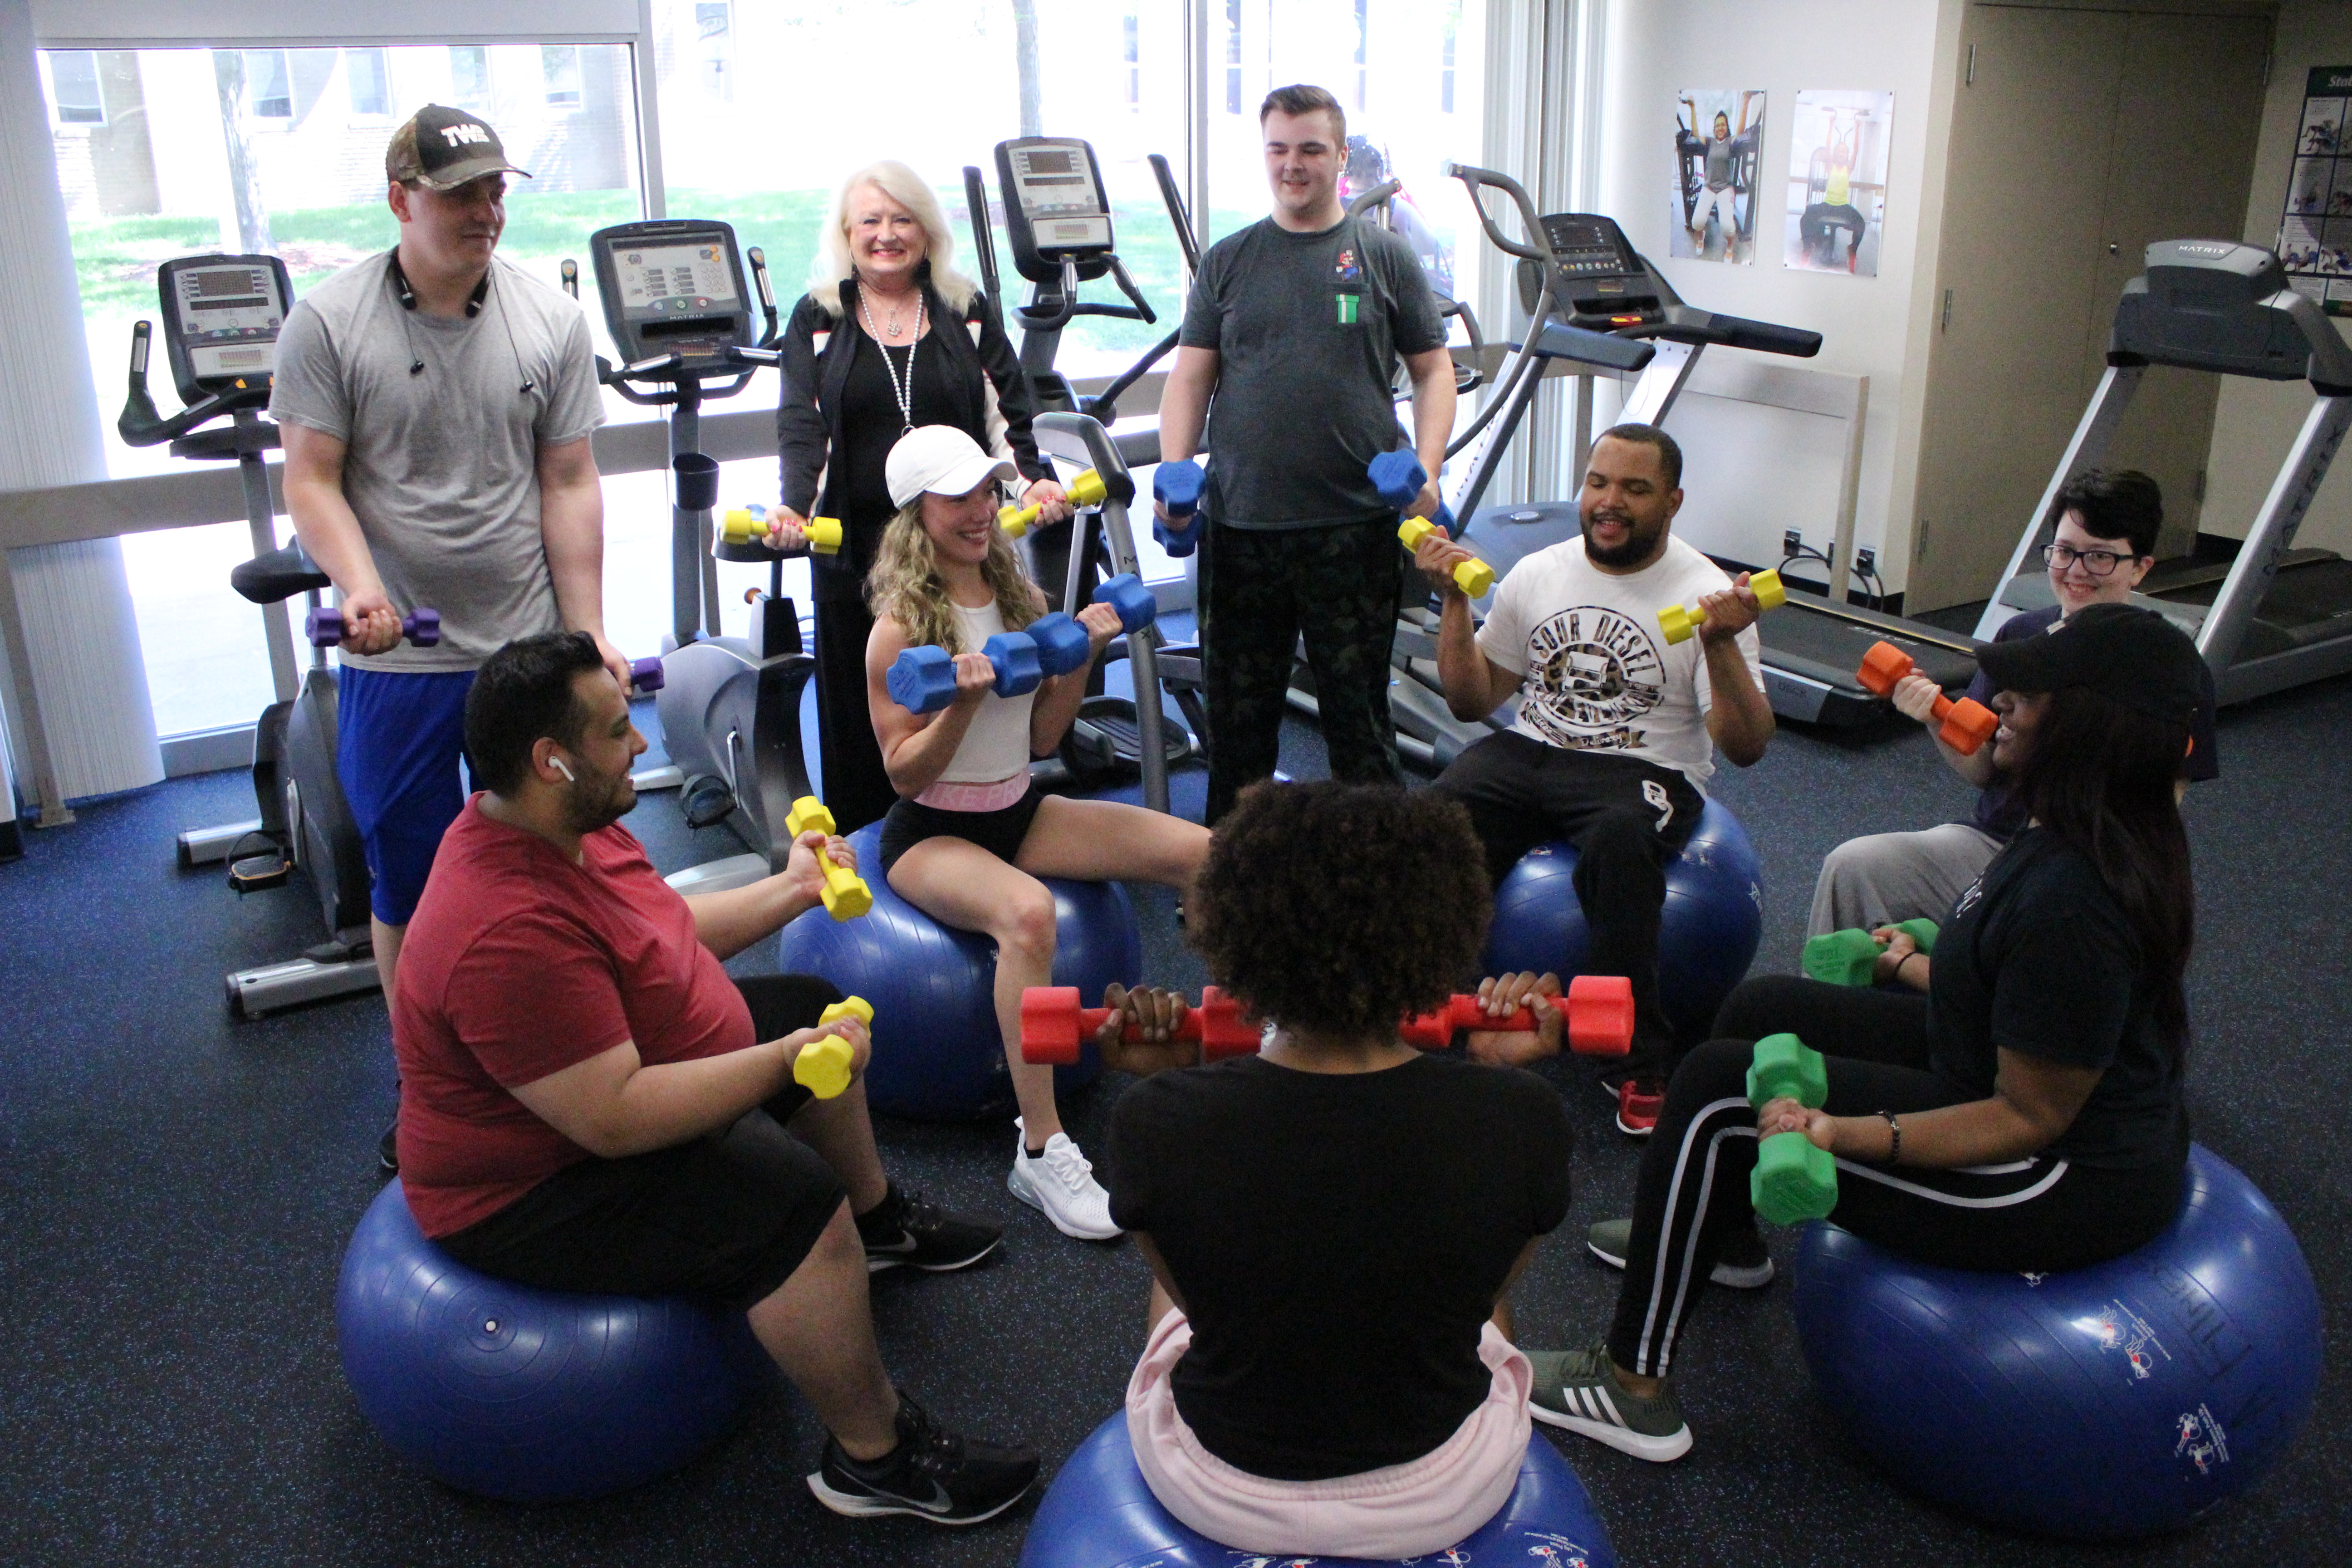 Image of a fitness class using dumbbells and exercise balls